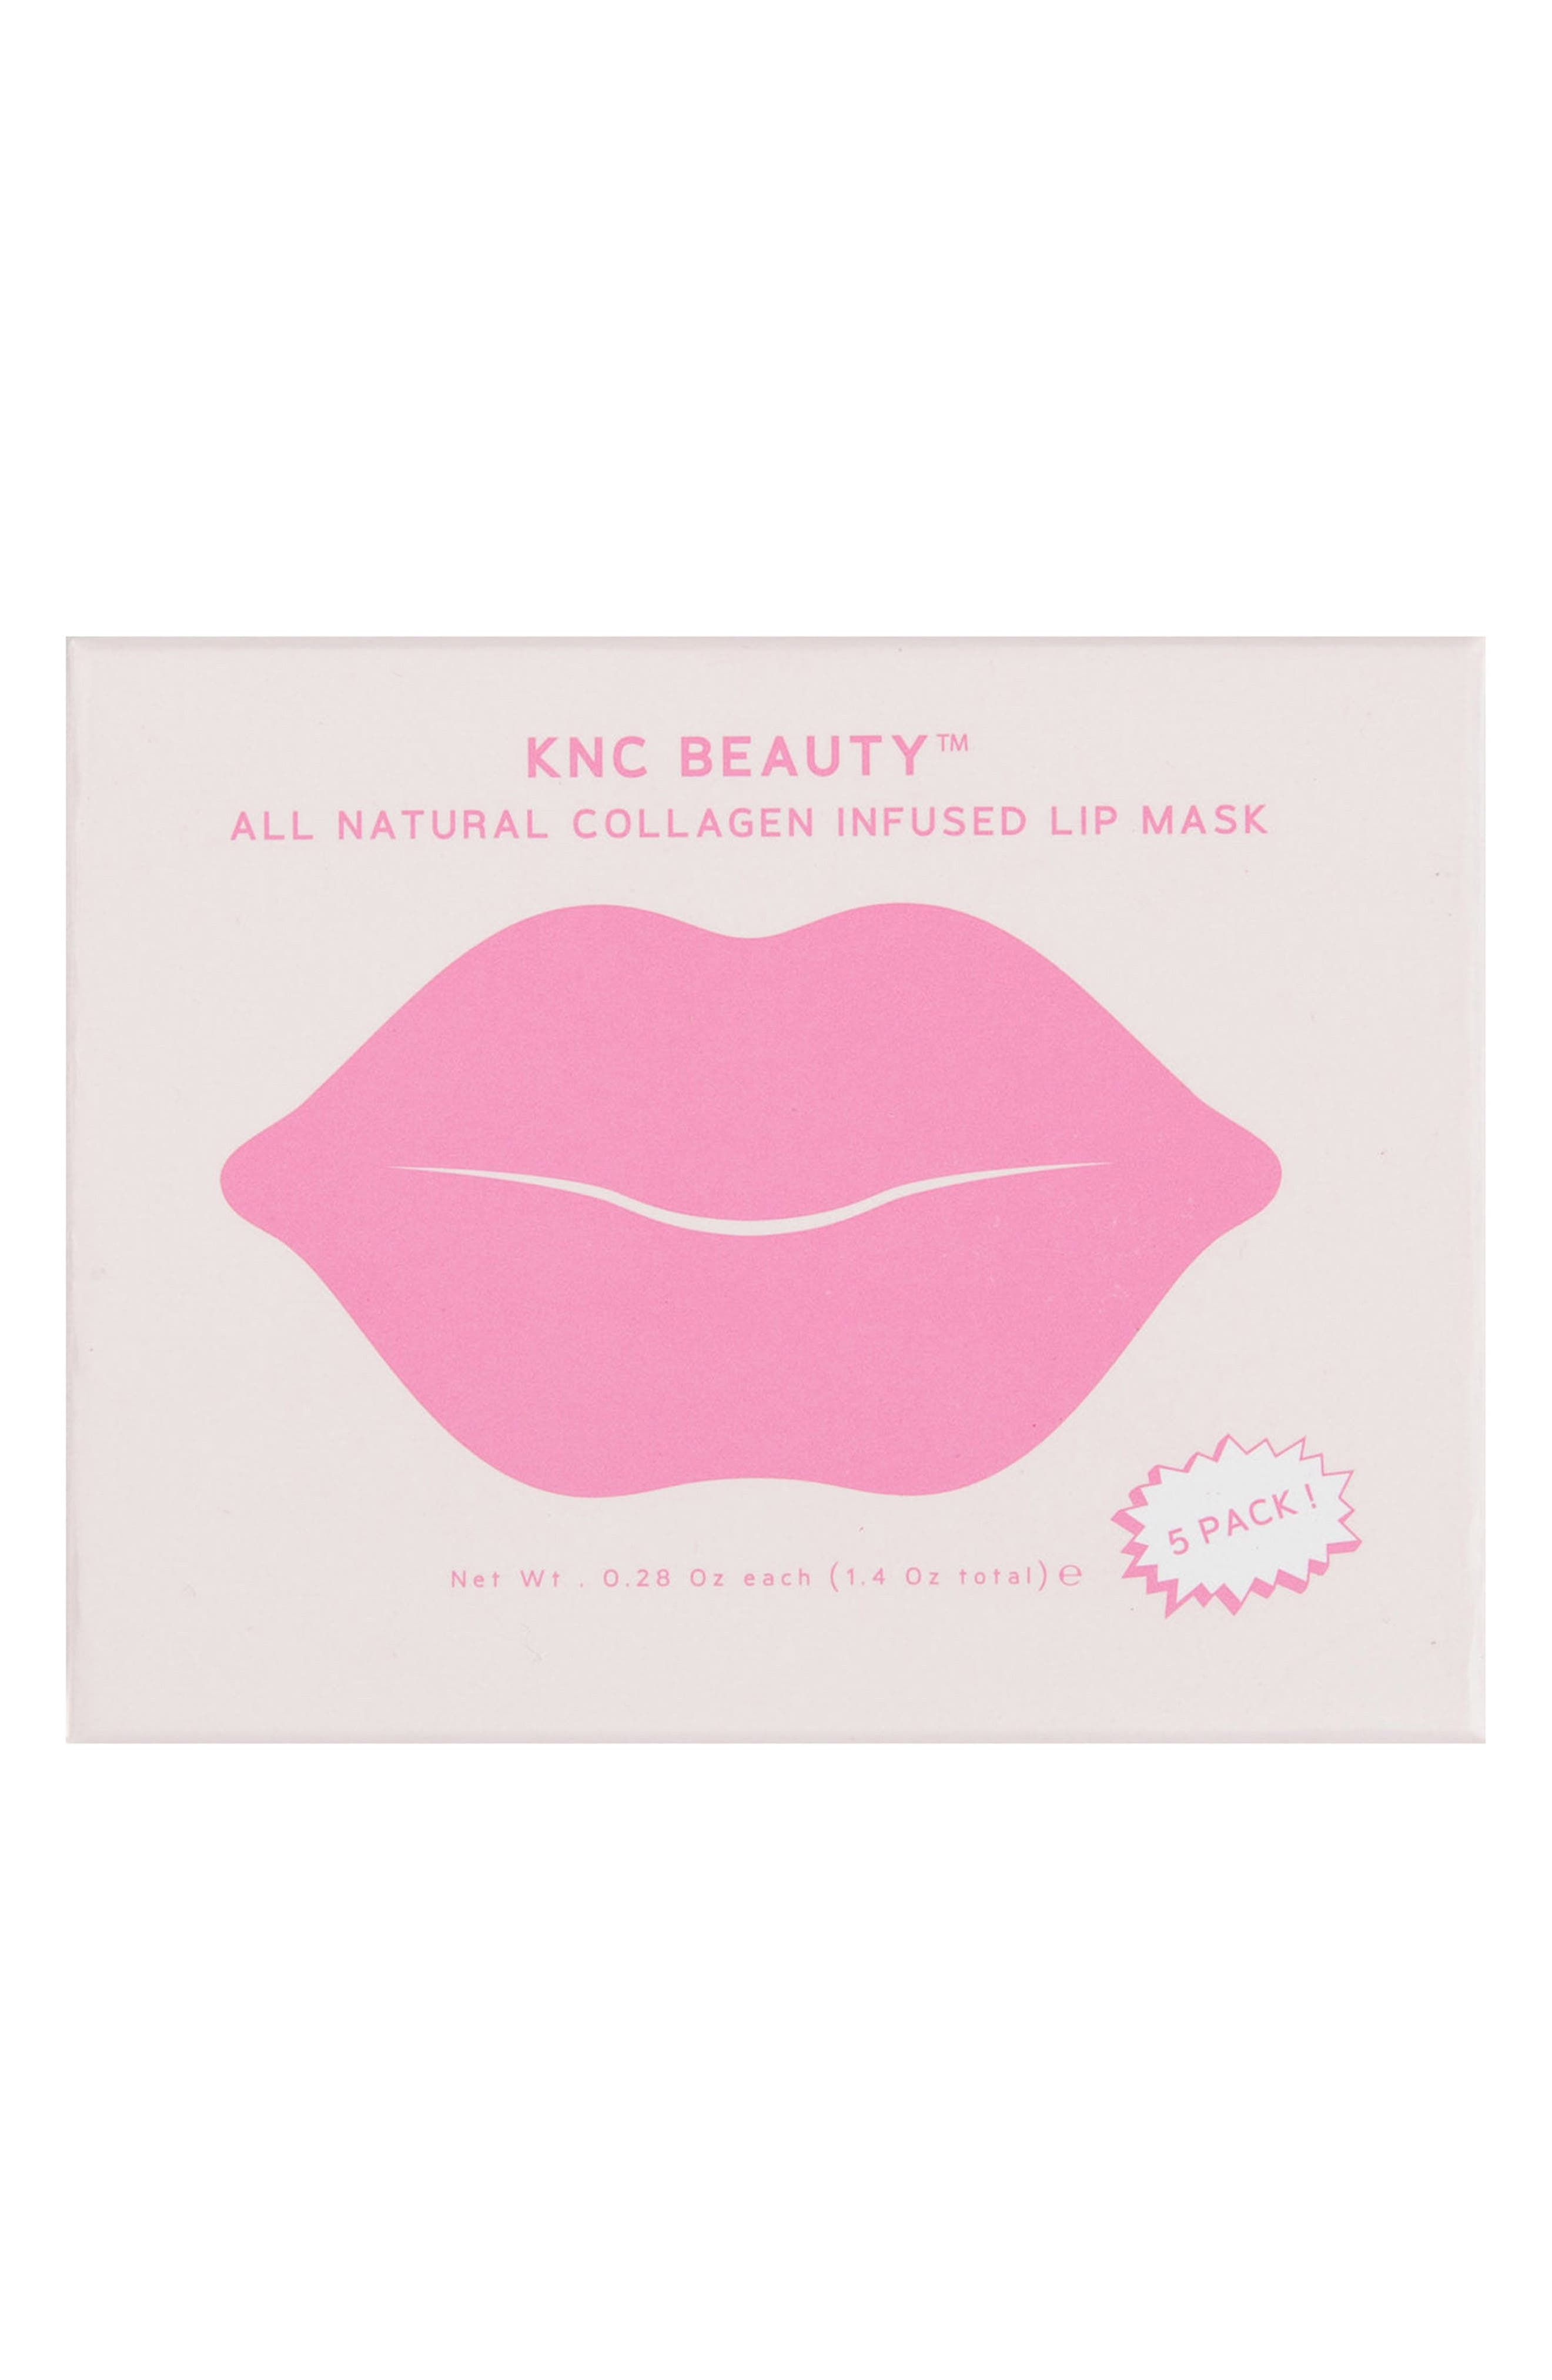 KNC Beauty Lip Mask Set (Nordstrom Exclusive)